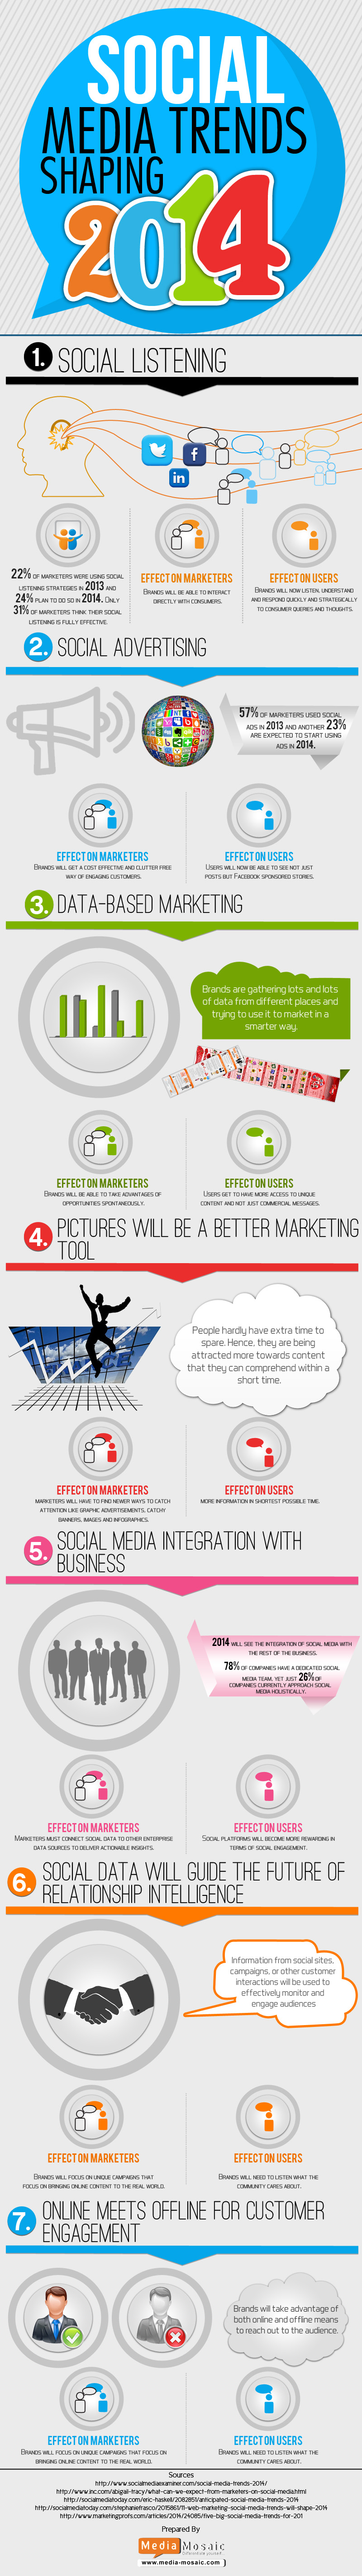 social media trends of 2014 infographic